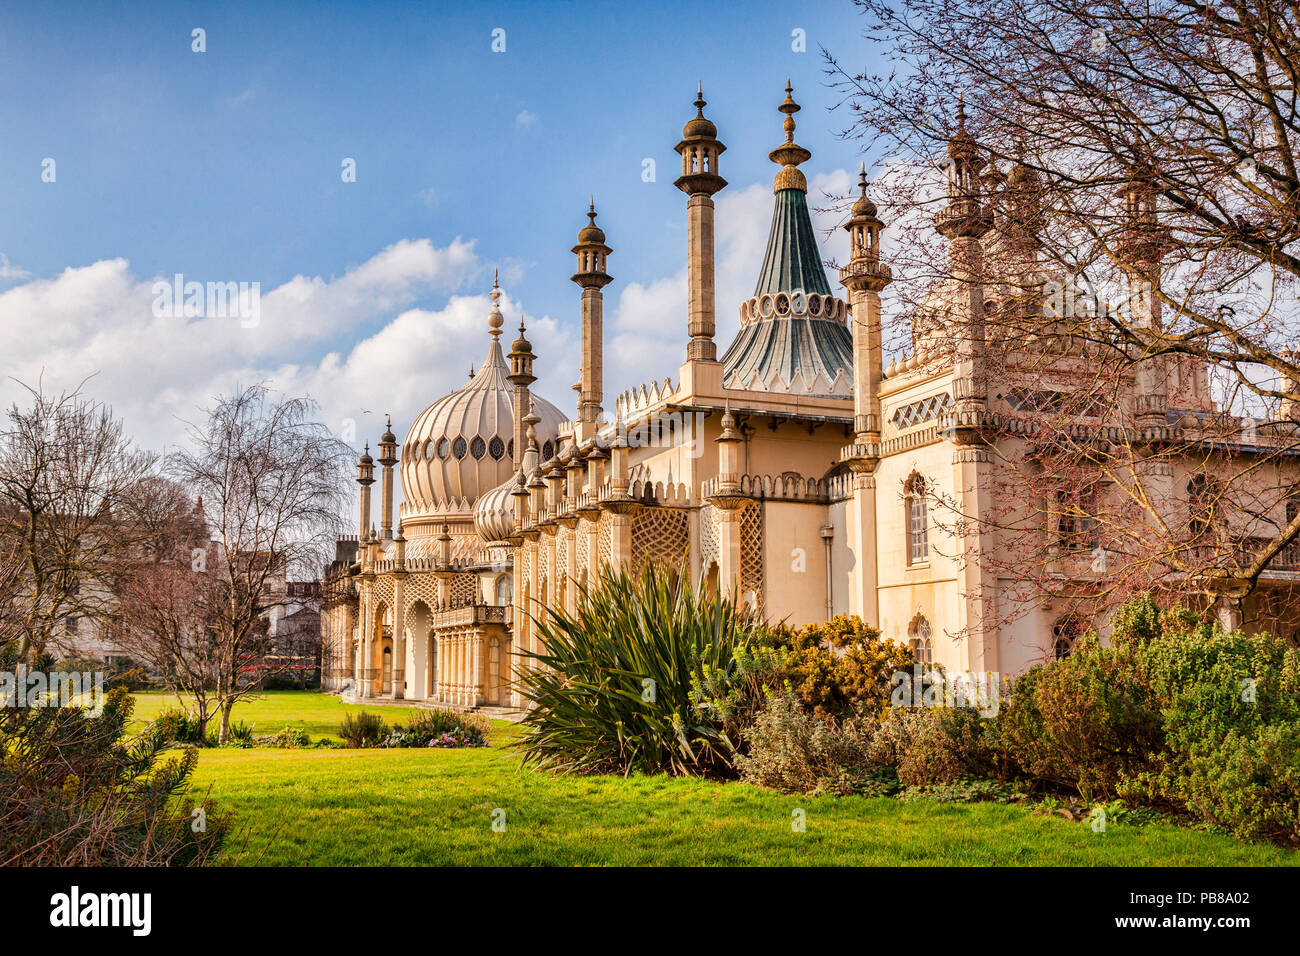 Brighton Royal Pavilion in early spring. - Stock Image